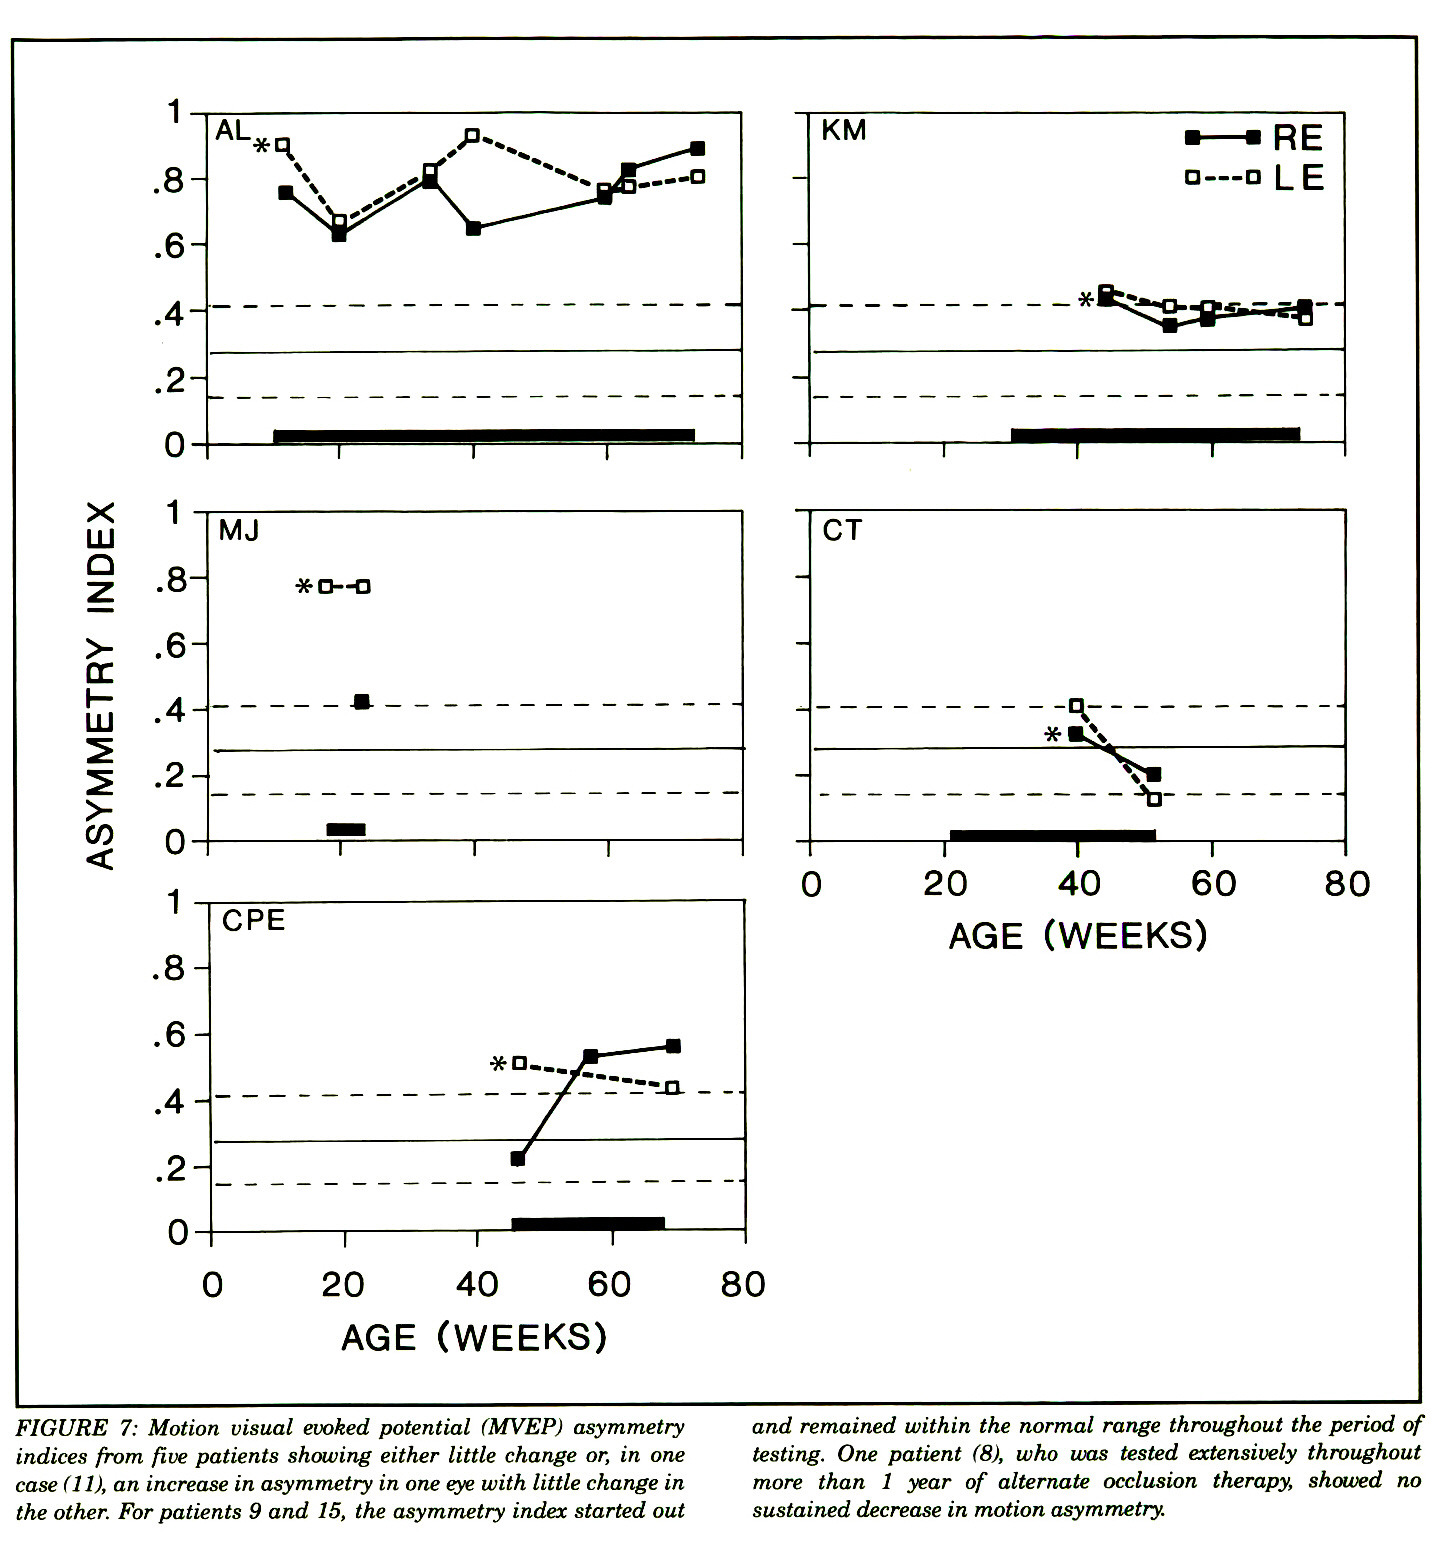 FIGURE 7: Motion visual evoked potential (MVEP) asymmetry indices from five patients showing either little change or, in one case (11), an increase in asymmetry in one eye with little change in the other. For patients 9 and 15, the asymmetry index started out and remained within the normal range throughout the period of testing. One patient (8), who was tested extensively throughout more than 1 year of alternate occlusion therapy, showed no sustained decrease in motion asymmetry.